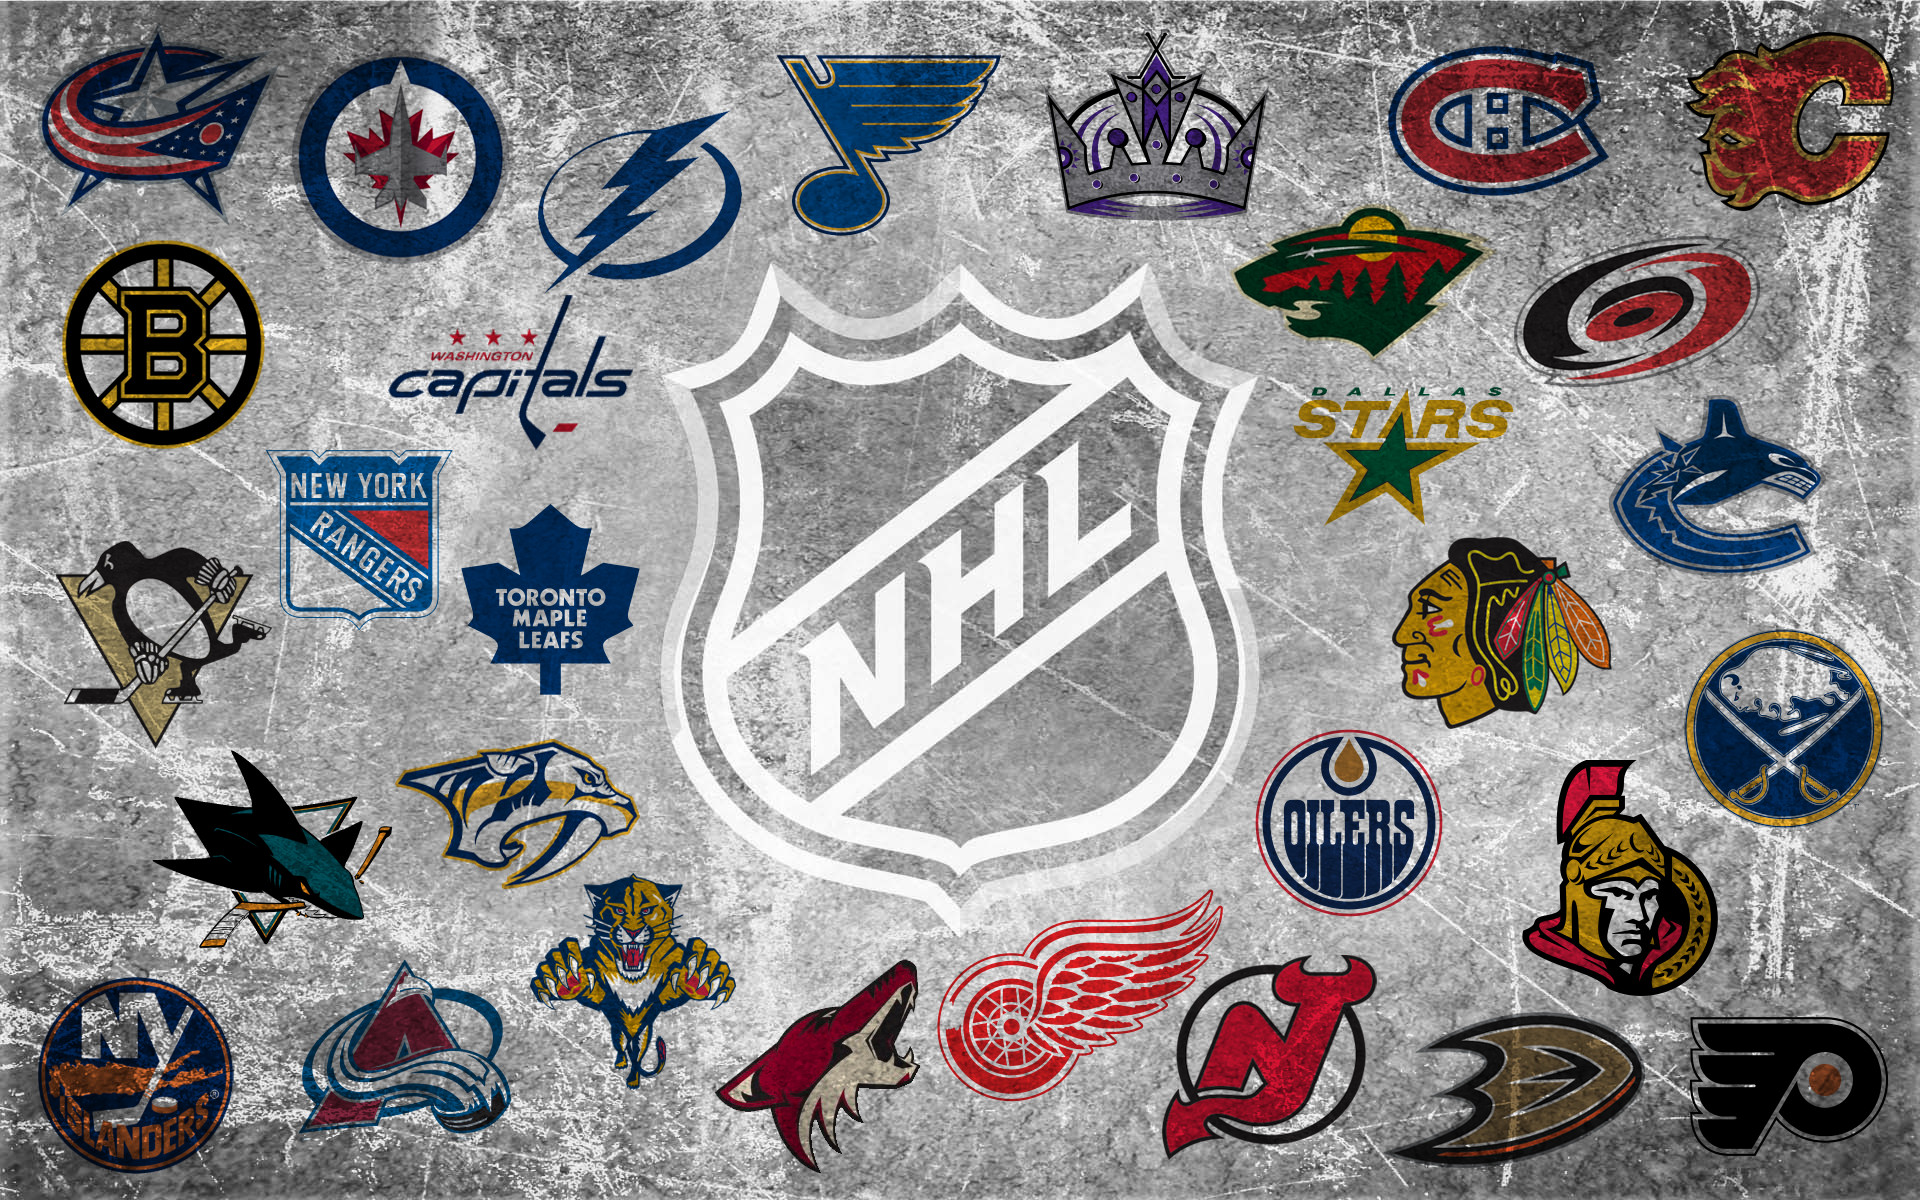 All nfl team logo wallpapers 55 images - Nhl hockey wallpapers ...